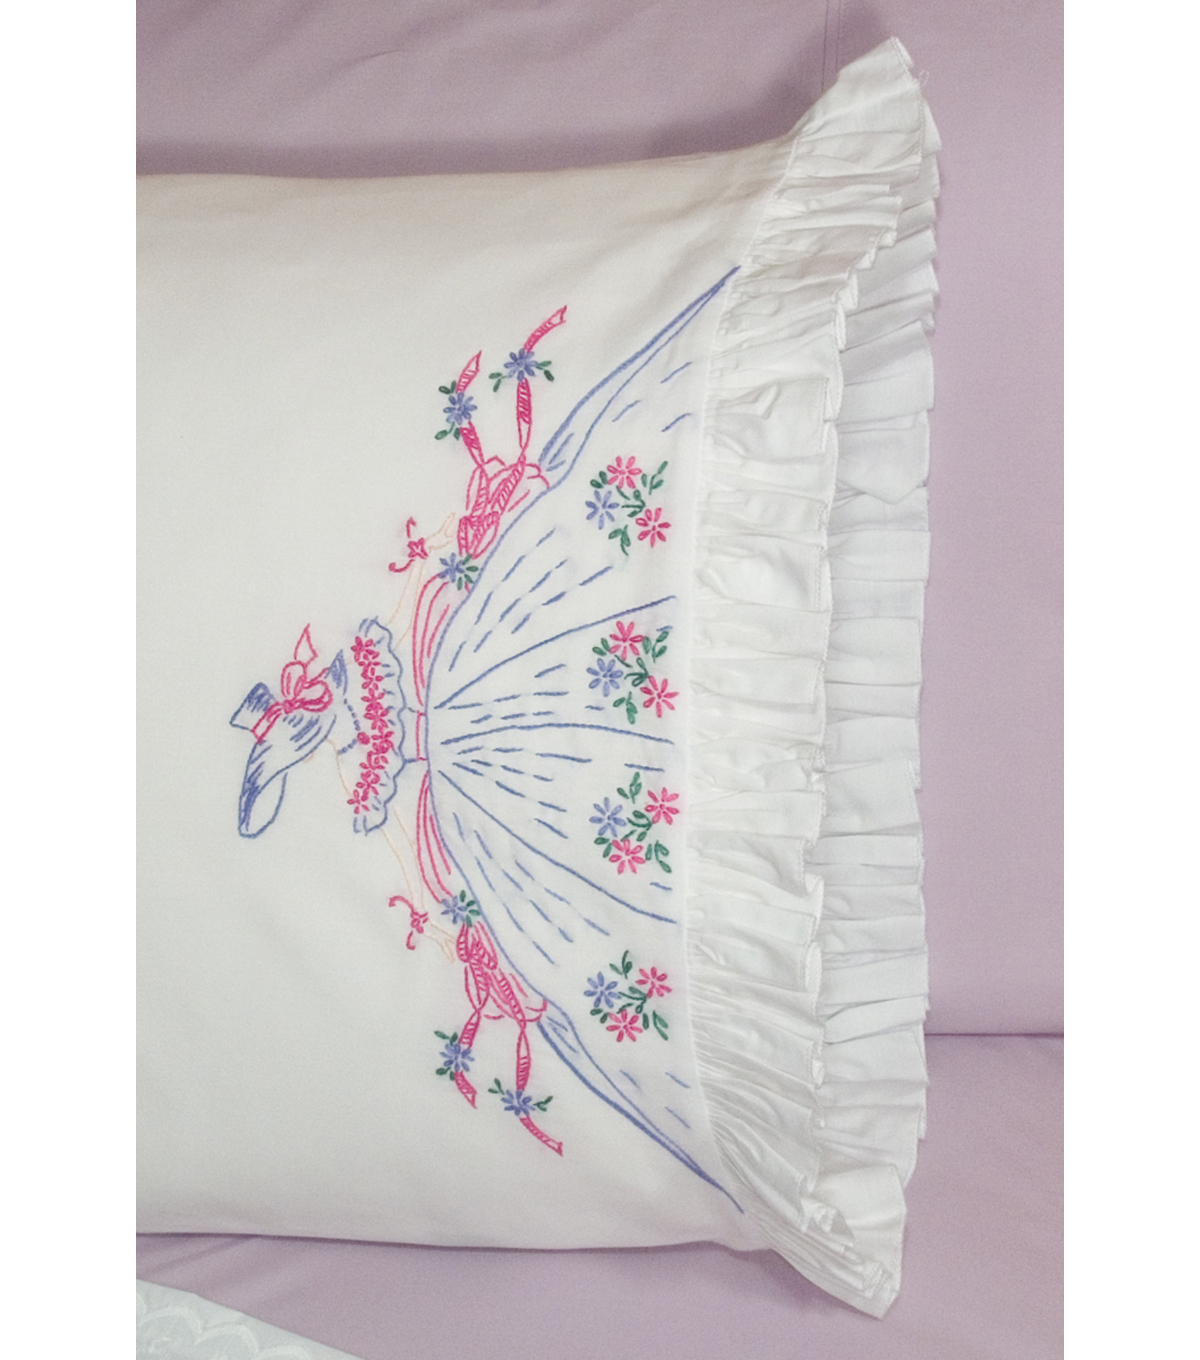 Fairway Stamped Lace Edge Pillowcase Southern Bell